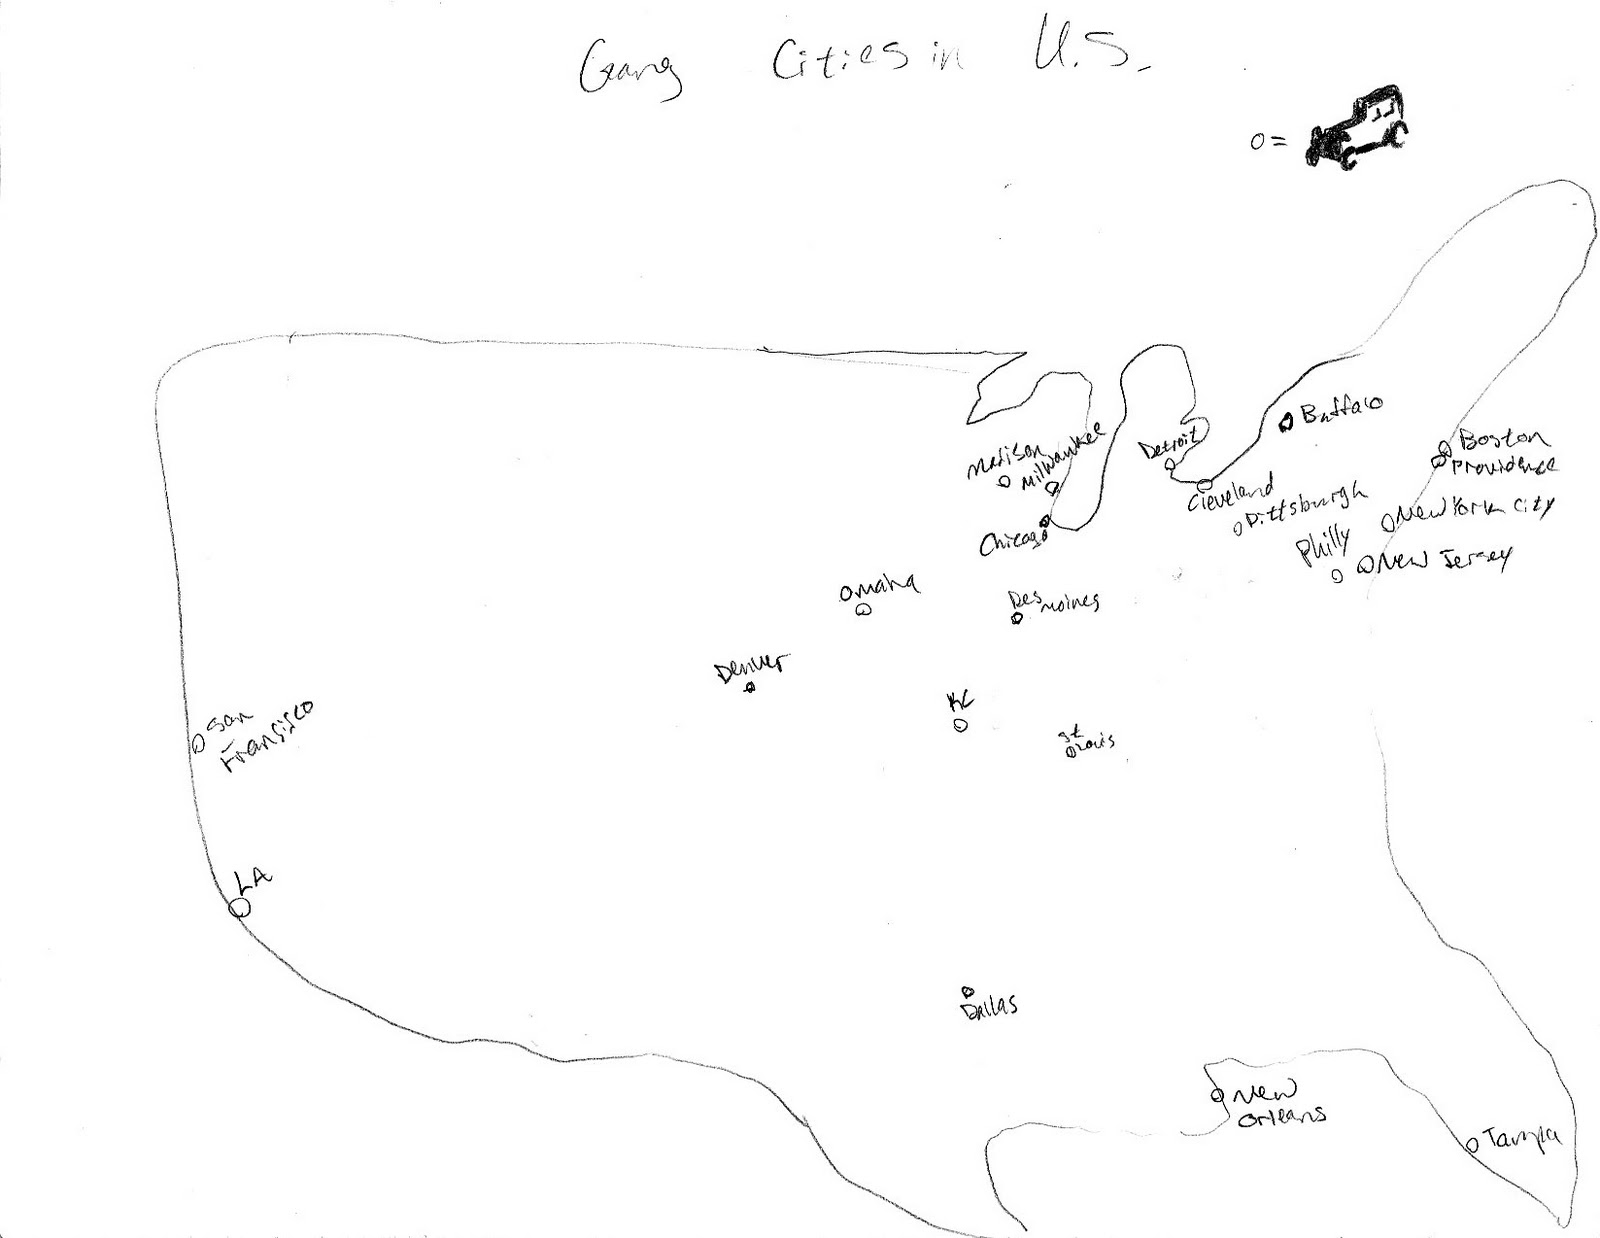 this is a map showing the various urban locations of the mafia in the united states